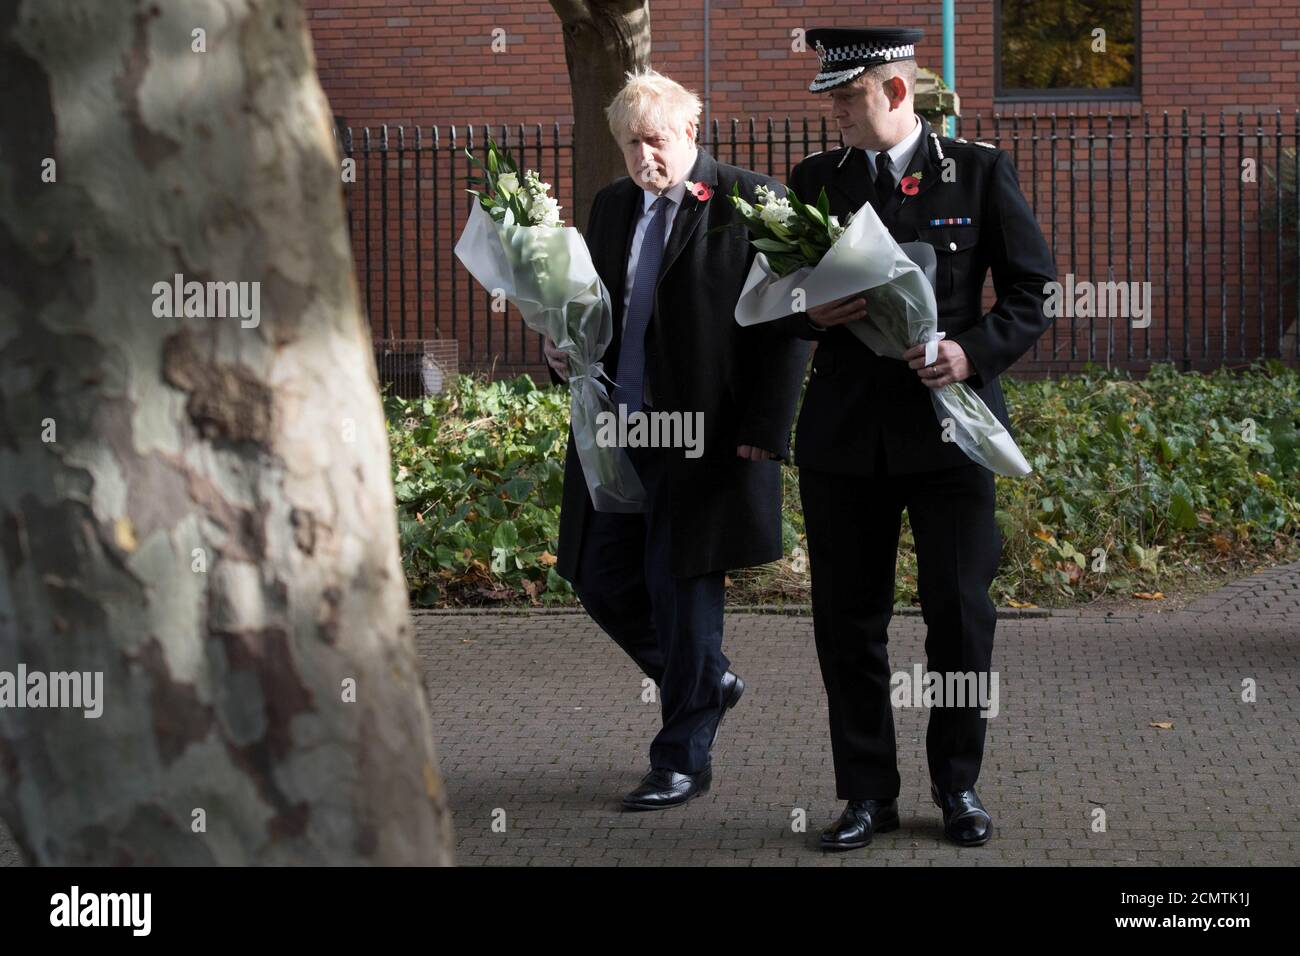 Prime Minister Boris Johnson walks with the Chief Constable of Essex Police, Ben-Julian Harrington, ahead of laying flowers during a visit to Thurrock Council Offices in Grays, Britain, October 28, 2019. Stefan Rousseau/Pool via REUTERS Stock Photo